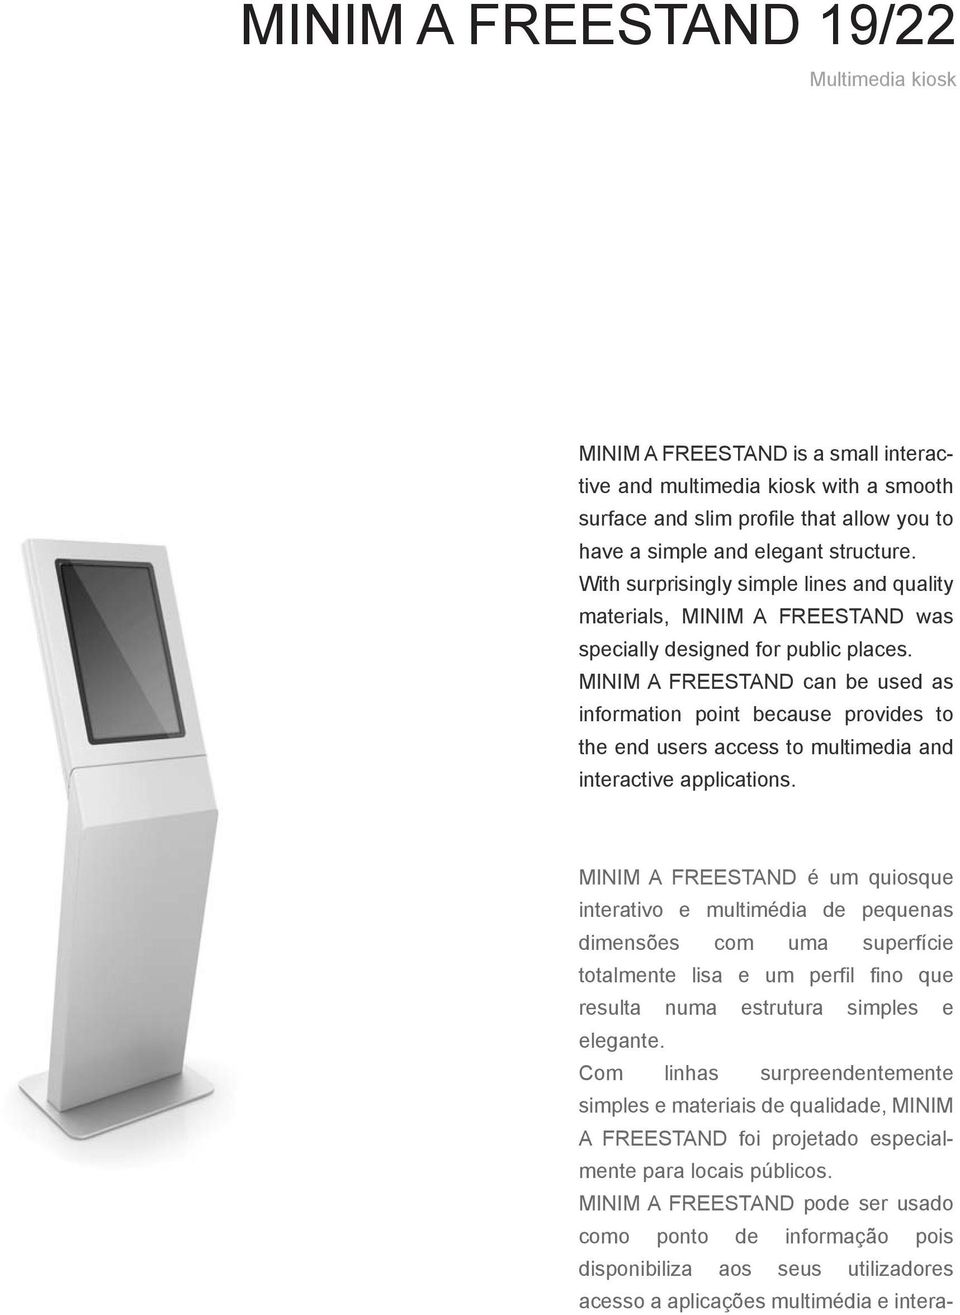 MINIM A FREESTAND can be used as information point because provides to the end users access to multimedia and interactive applications.